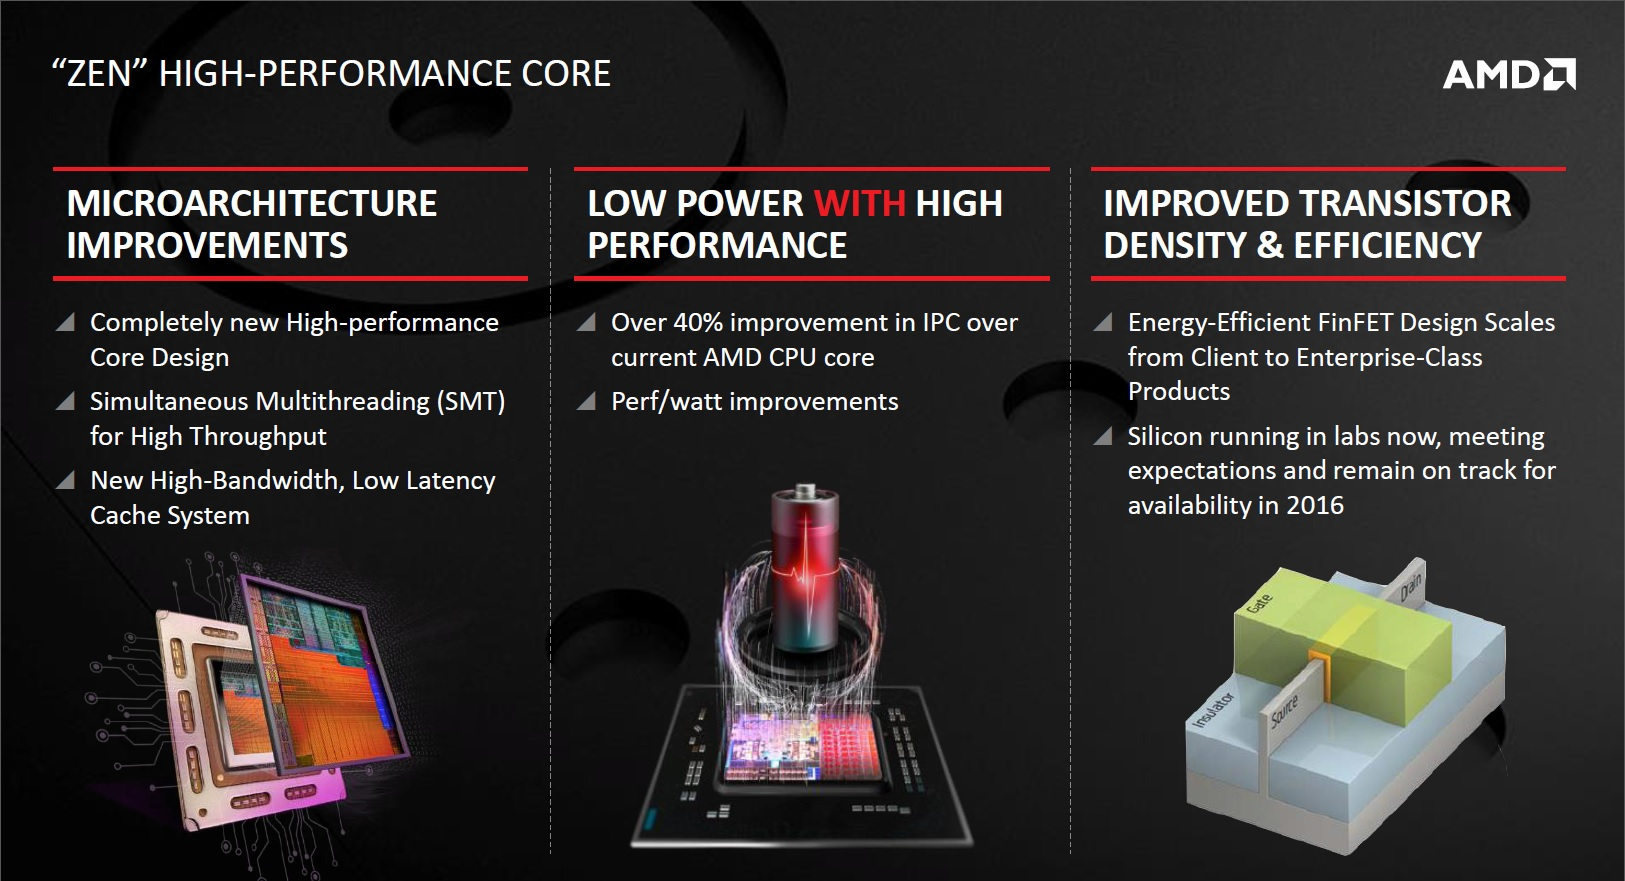 AMD Zen High Performance Core